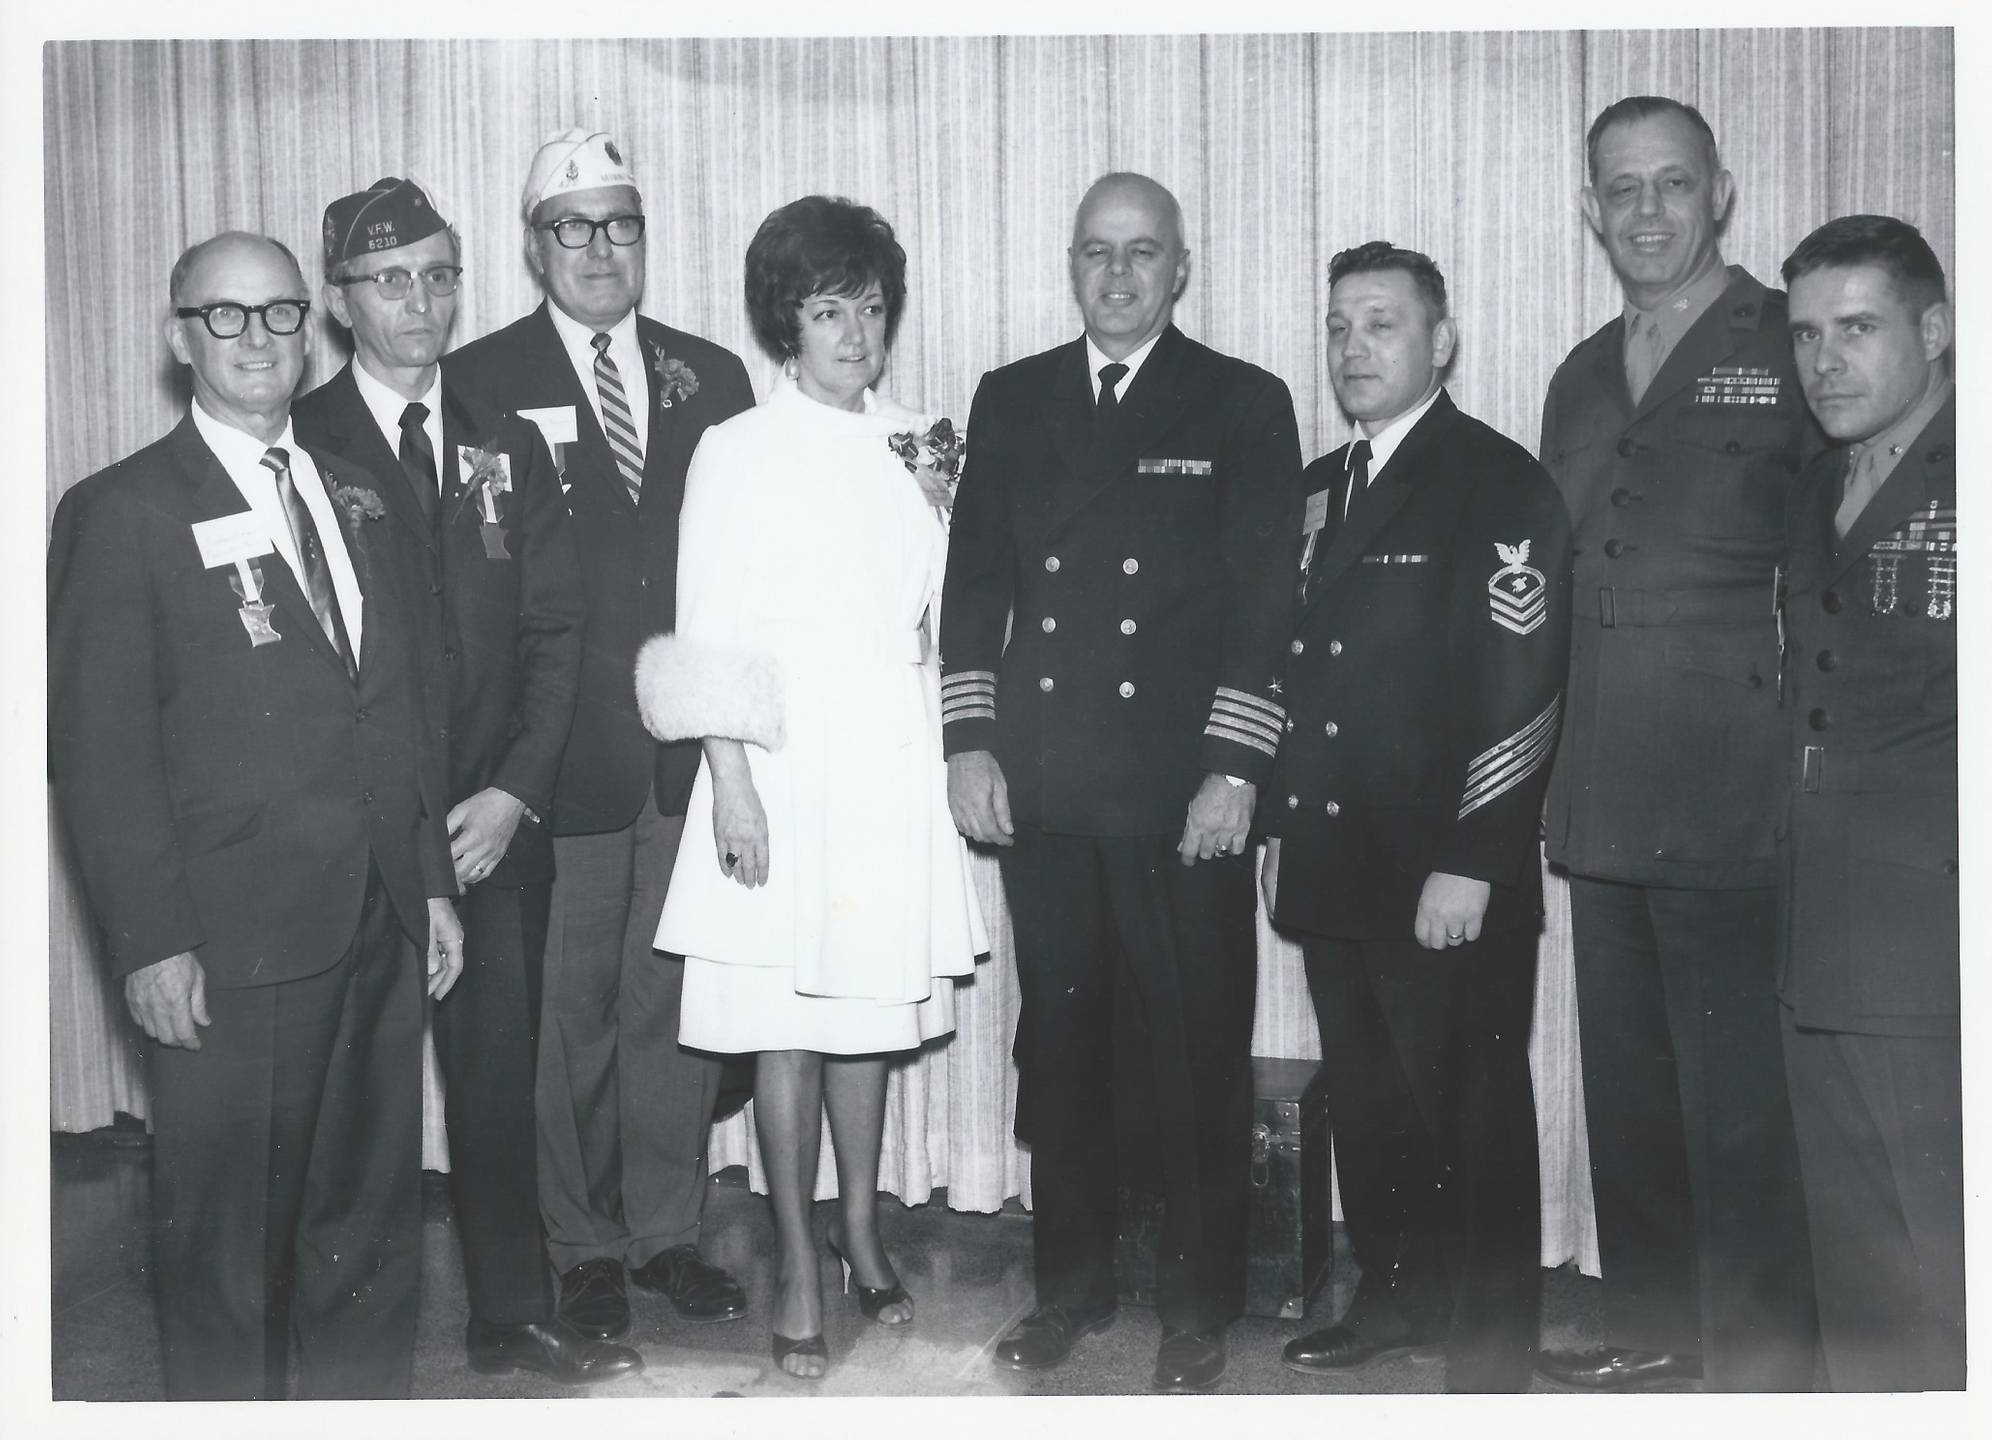 Posed photo of several servicemen, one civilian man, and one civilian woman.